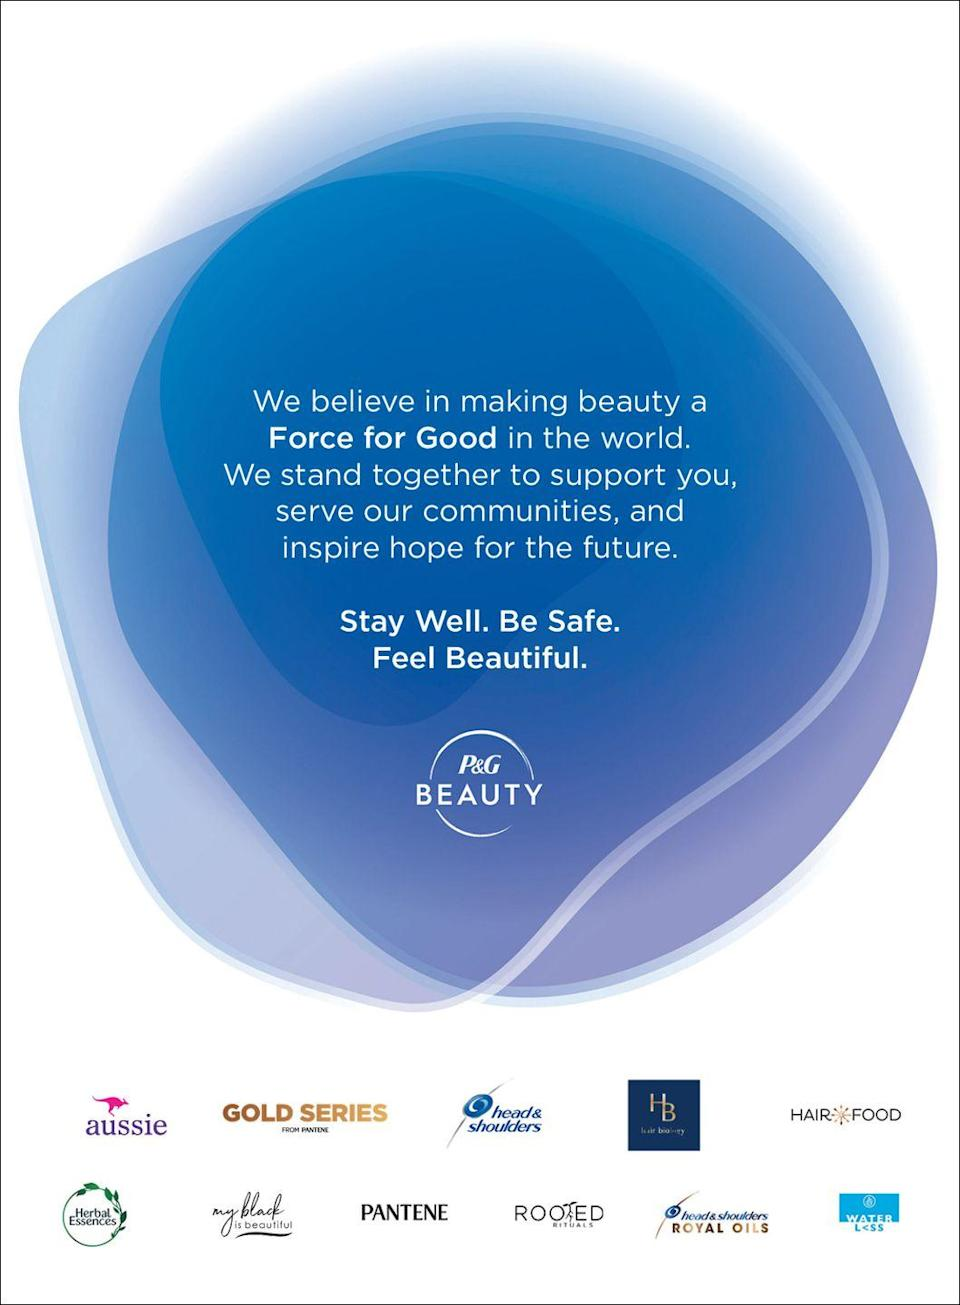 <p>We believe in making beauty a Force For Good in the world. We stand together to support you, serve our communities, and inspire hope for the future. </p><p>Stay well. Be safe. Feel beautiful. </p>